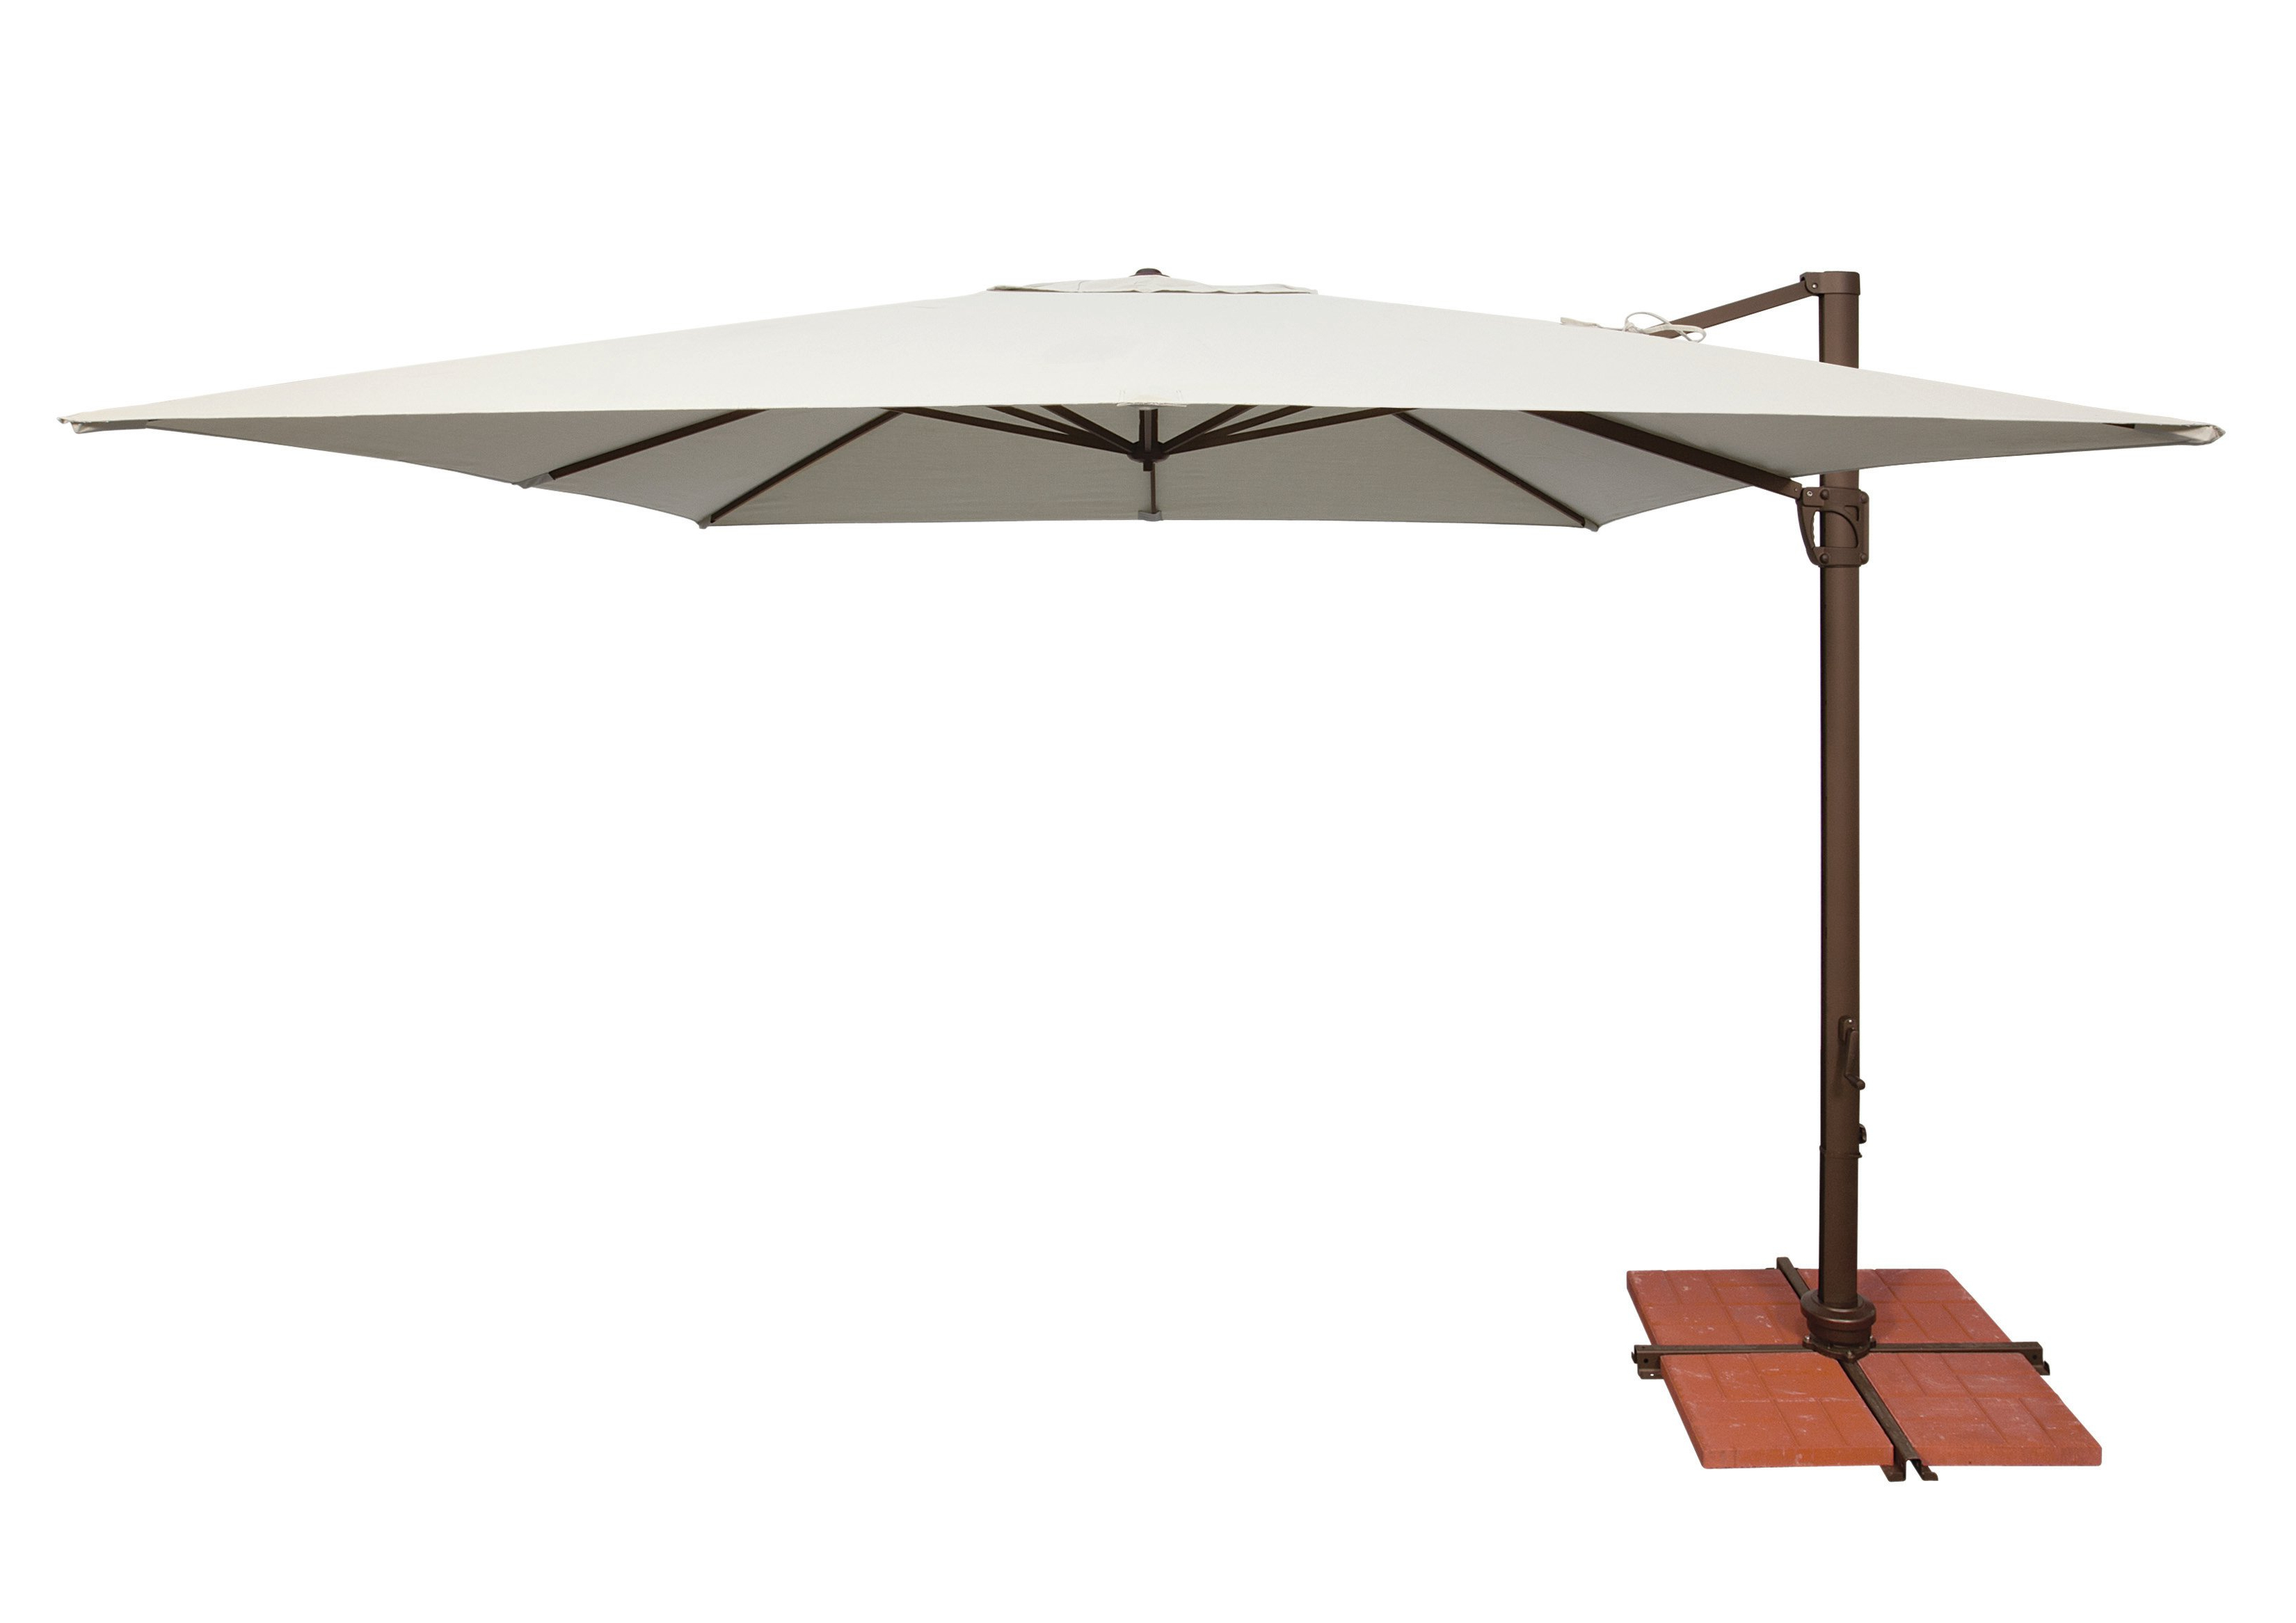 Windell 10' Square Cantilever Umbrella With Regard To Most Recent Spitler Square Cantilever Umbrellas (View 11 of 20)